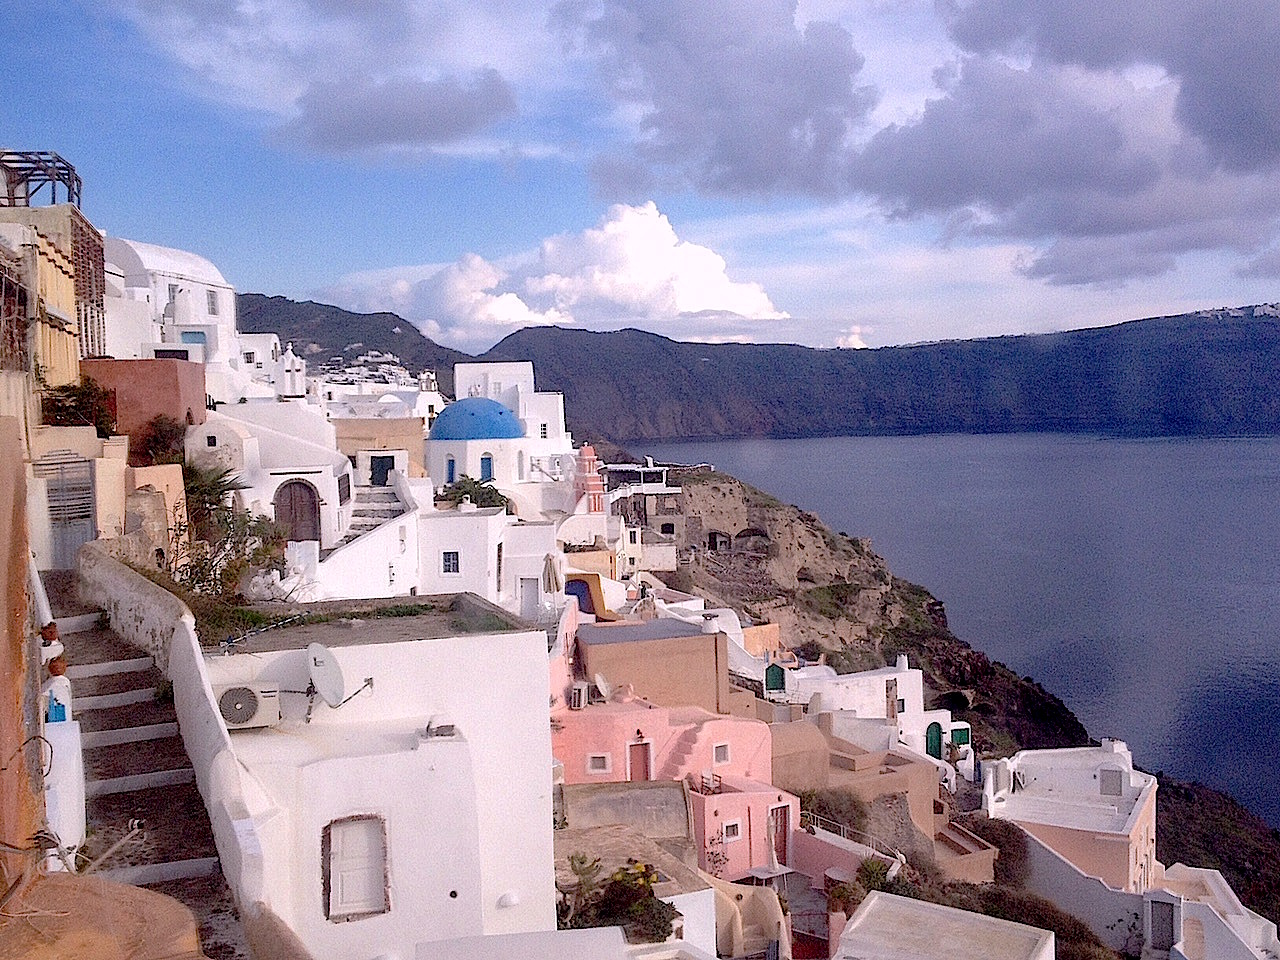 Santorini without thecrowds